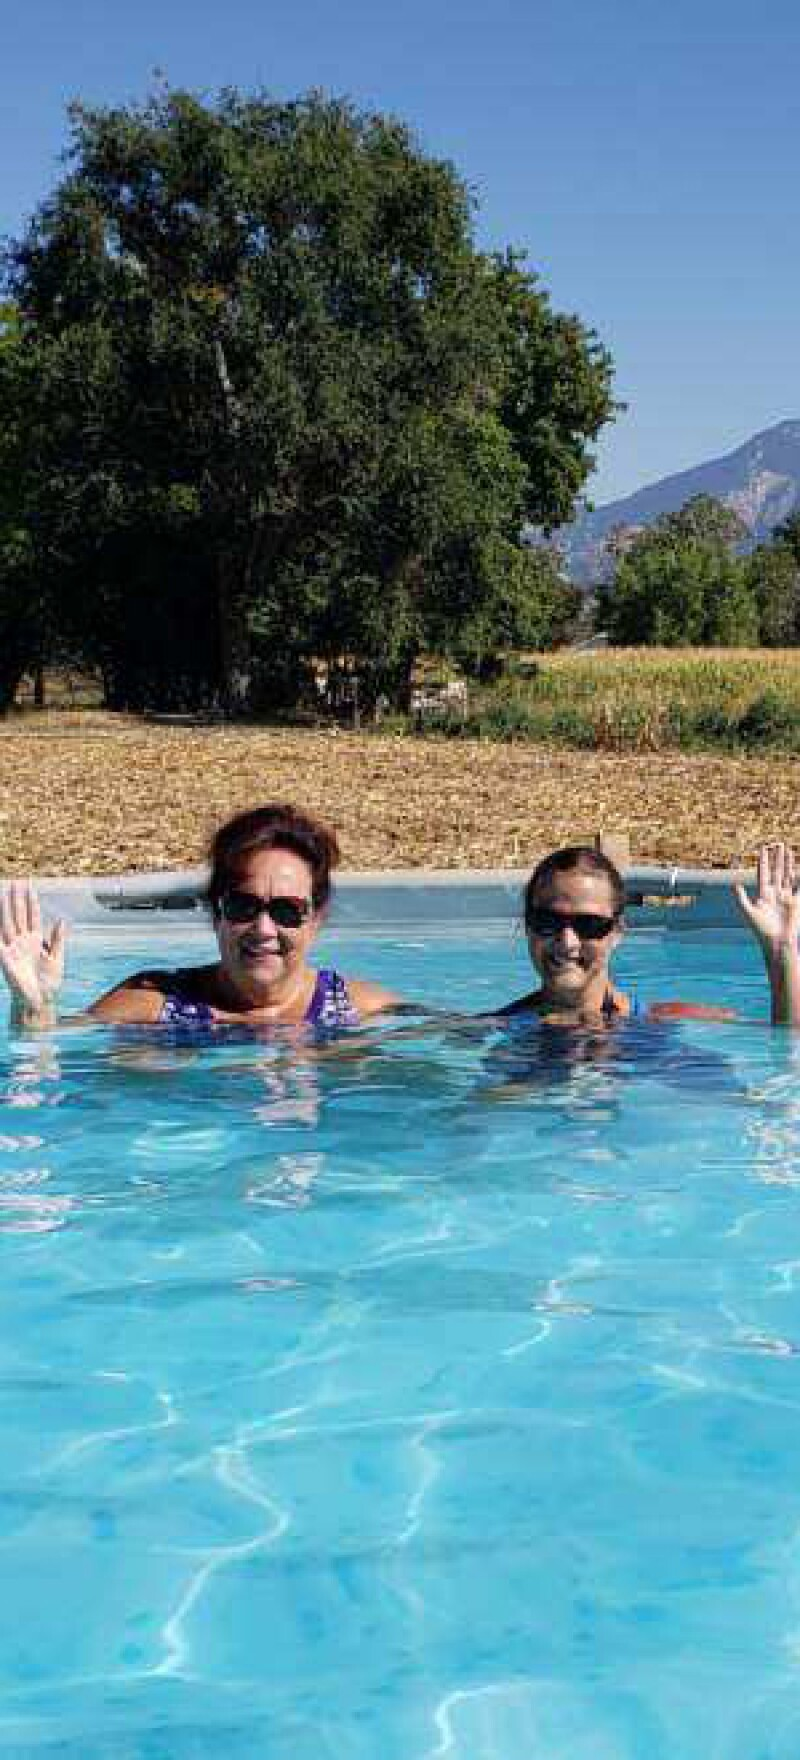 Amber and her mom in their outdoor pool with the mountains in the background.